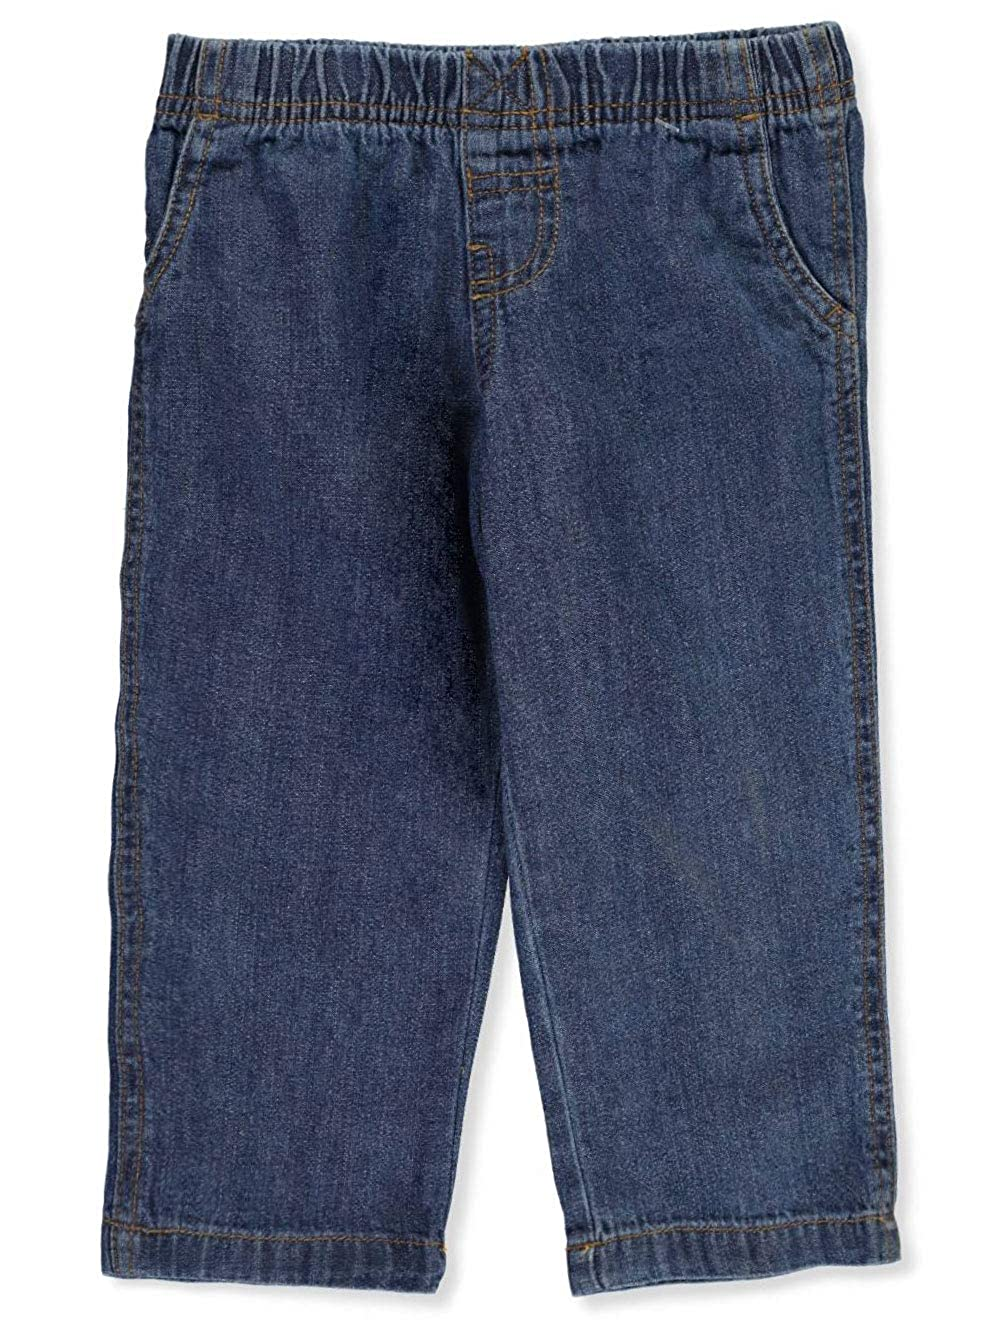 Famous Brand Baby Boys Pull-On Jeans